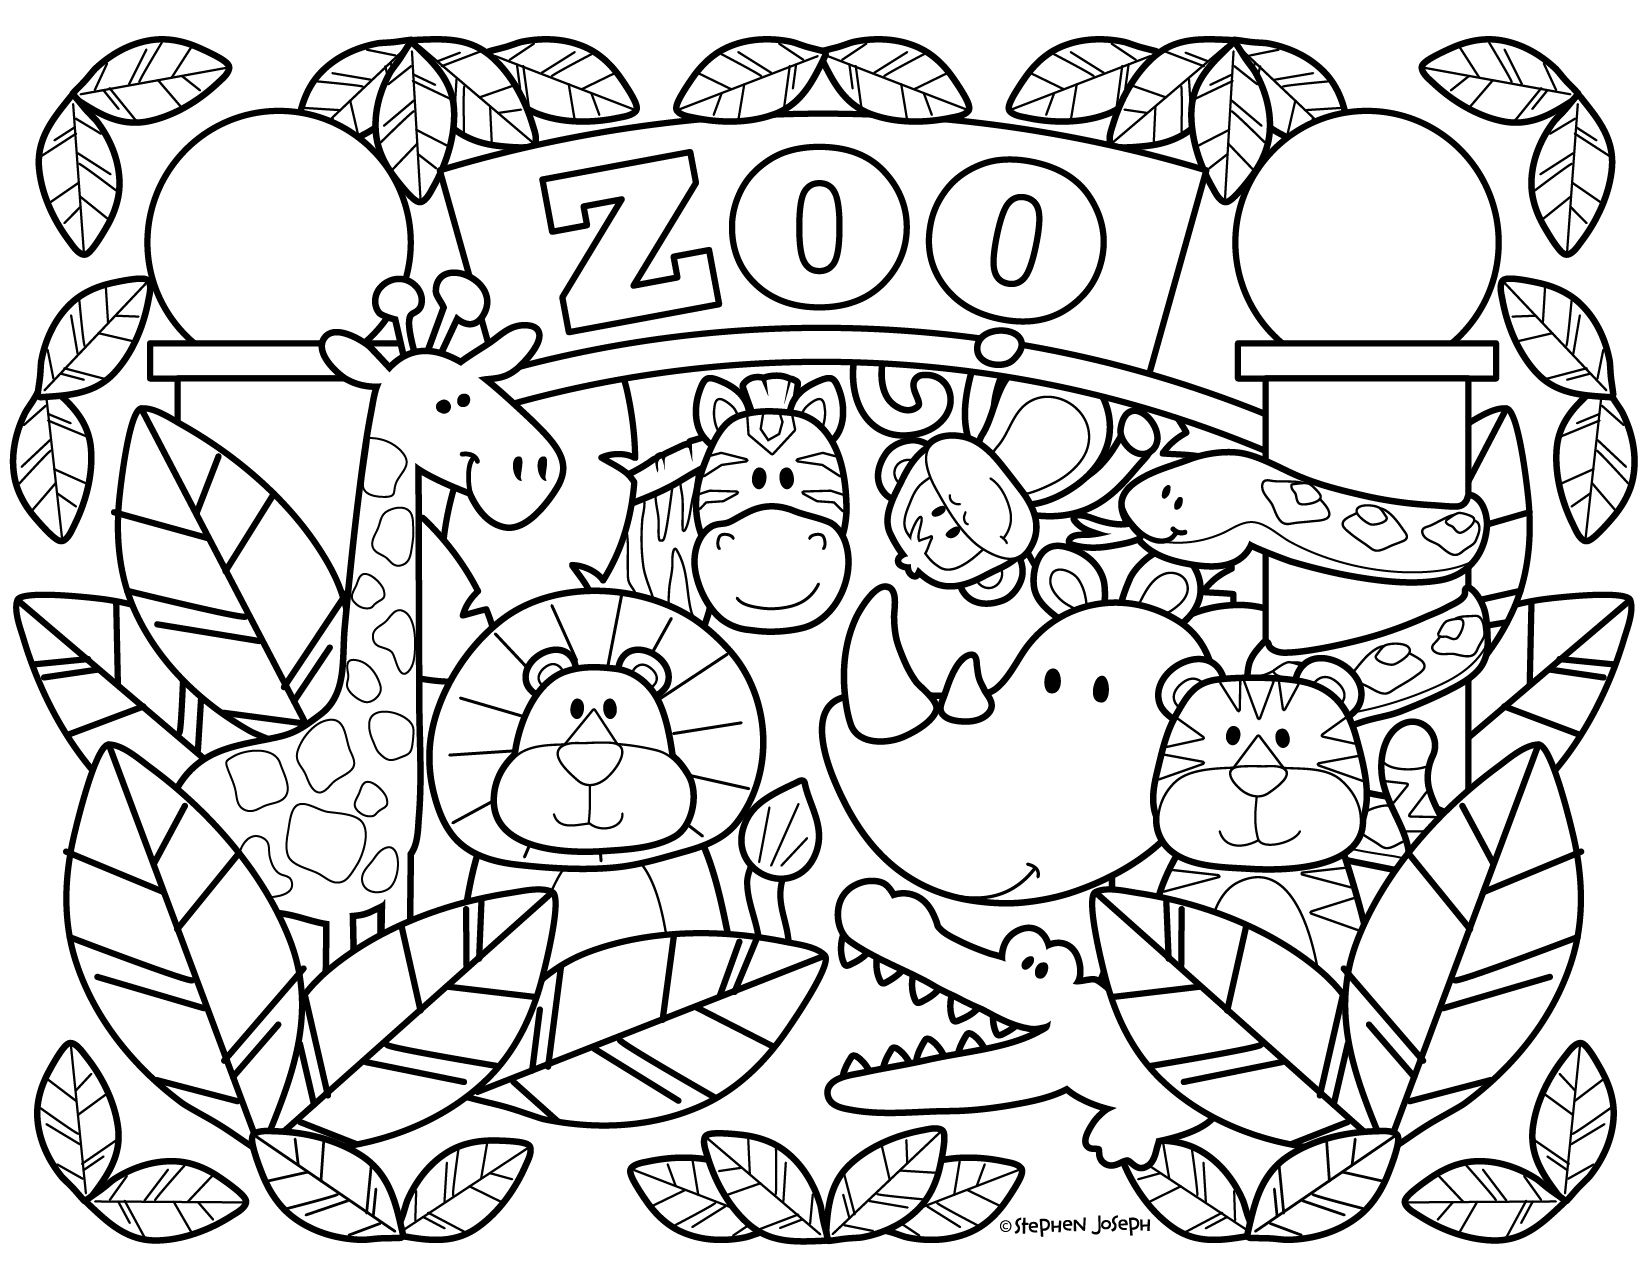 Zoo Coloring Pages - Printable & Free! By Stephen Joseph ...   colouring pages for zoo animals